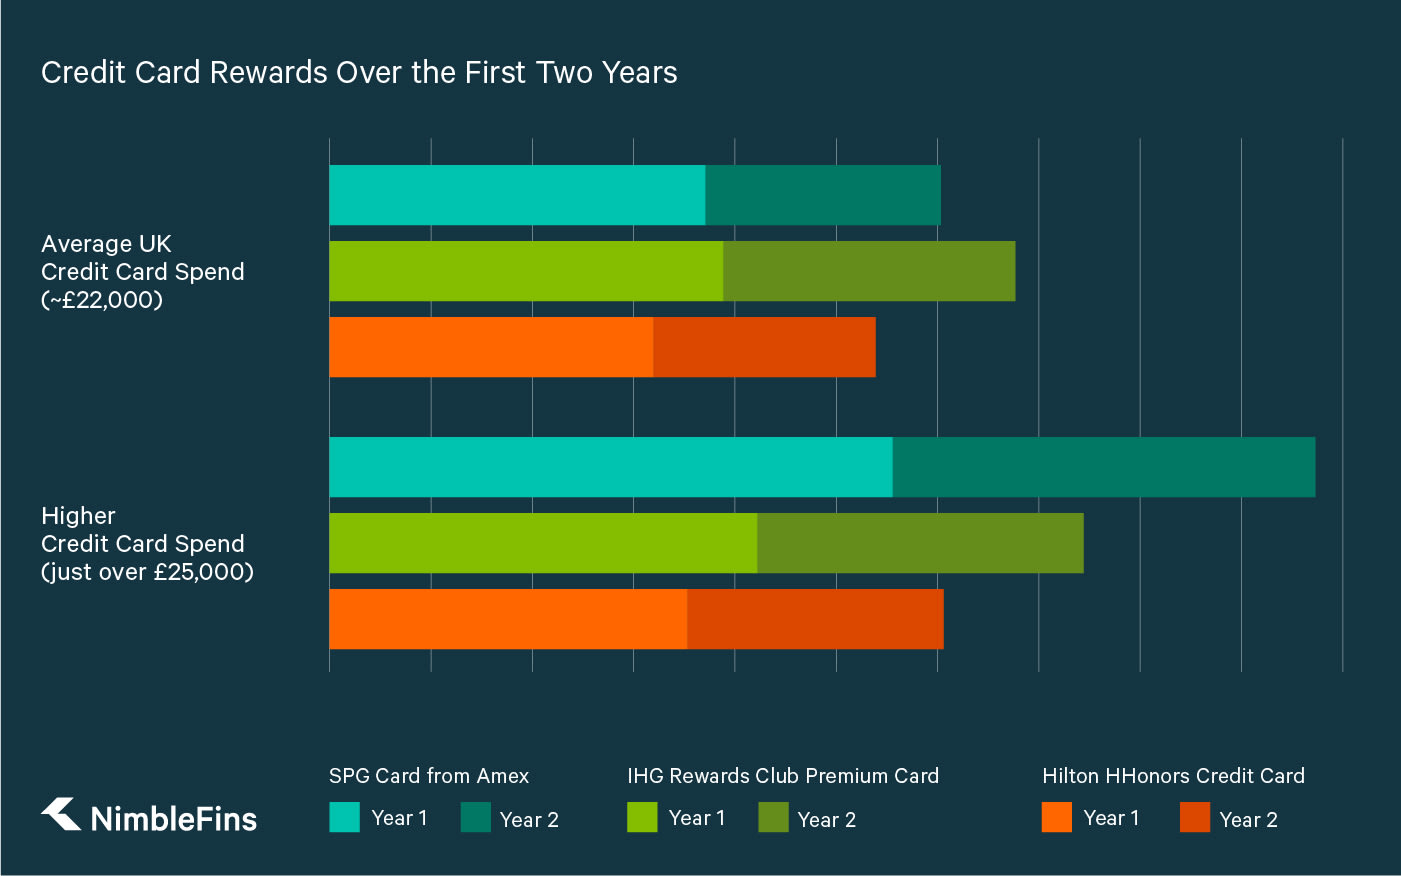 chart showing Rewards on the 3 Best Hotel Rewards Cards over 2 Years, for both Average UK Household Spend and Higher Spending